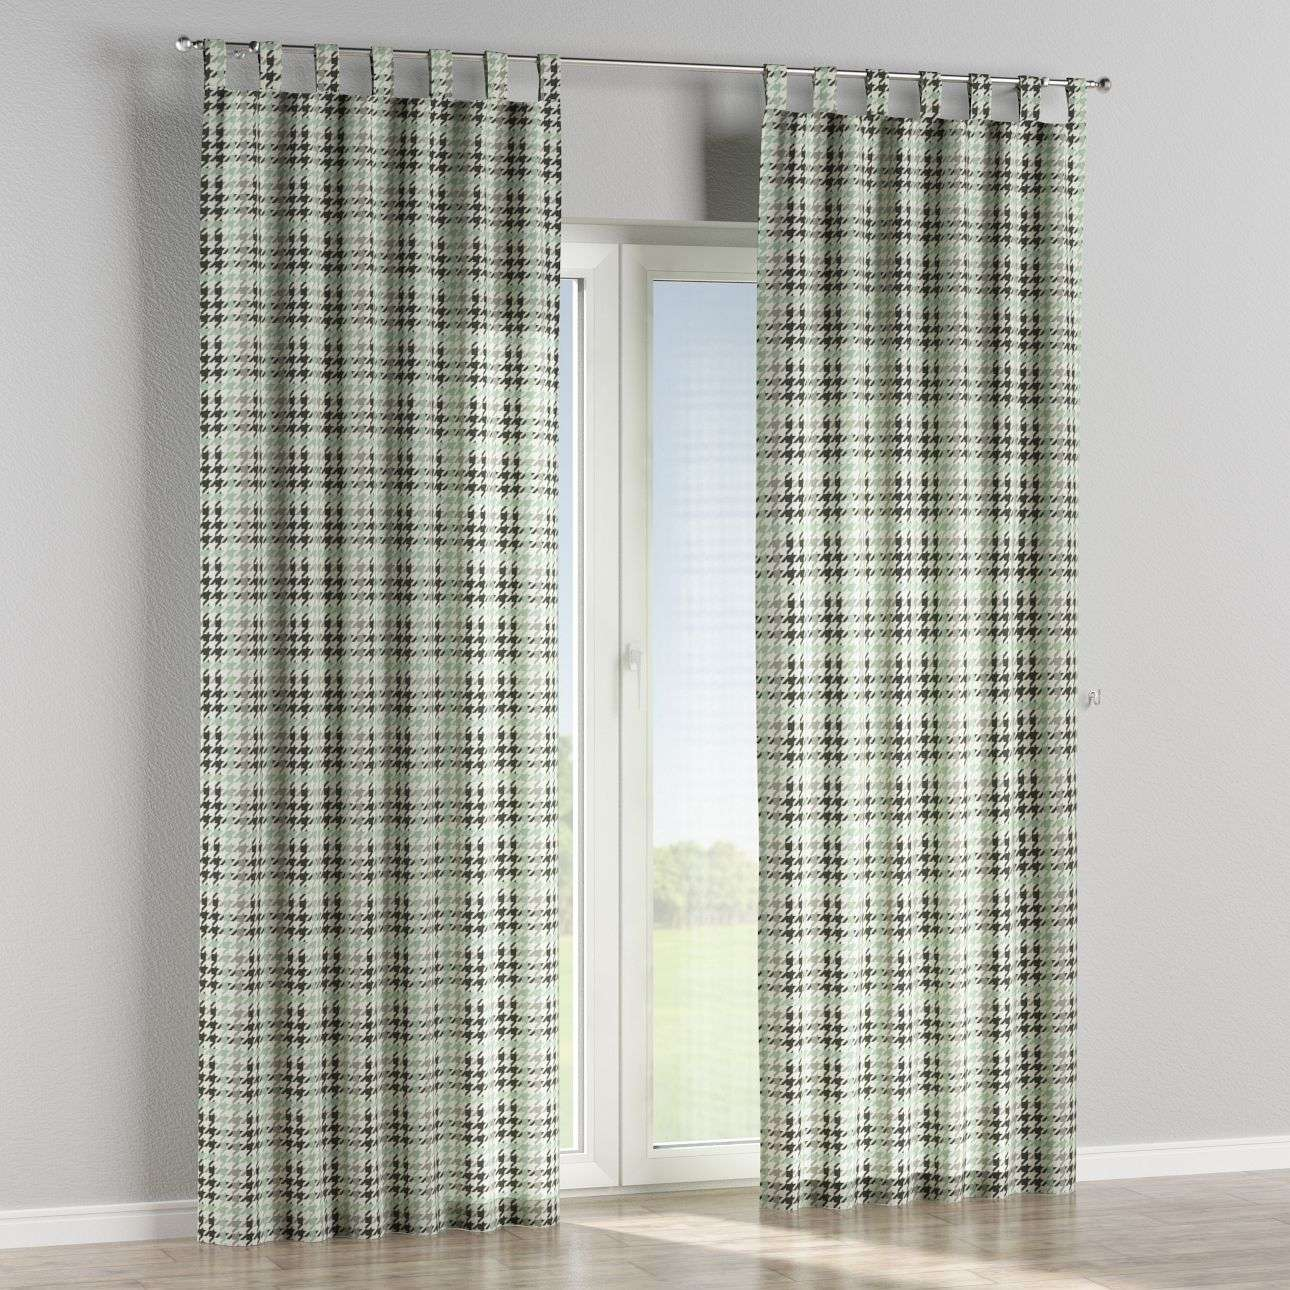 Tab top curtains 130 × 260 cm (51 × 102 inch) in collection Brooklyn, fabric: 137-77